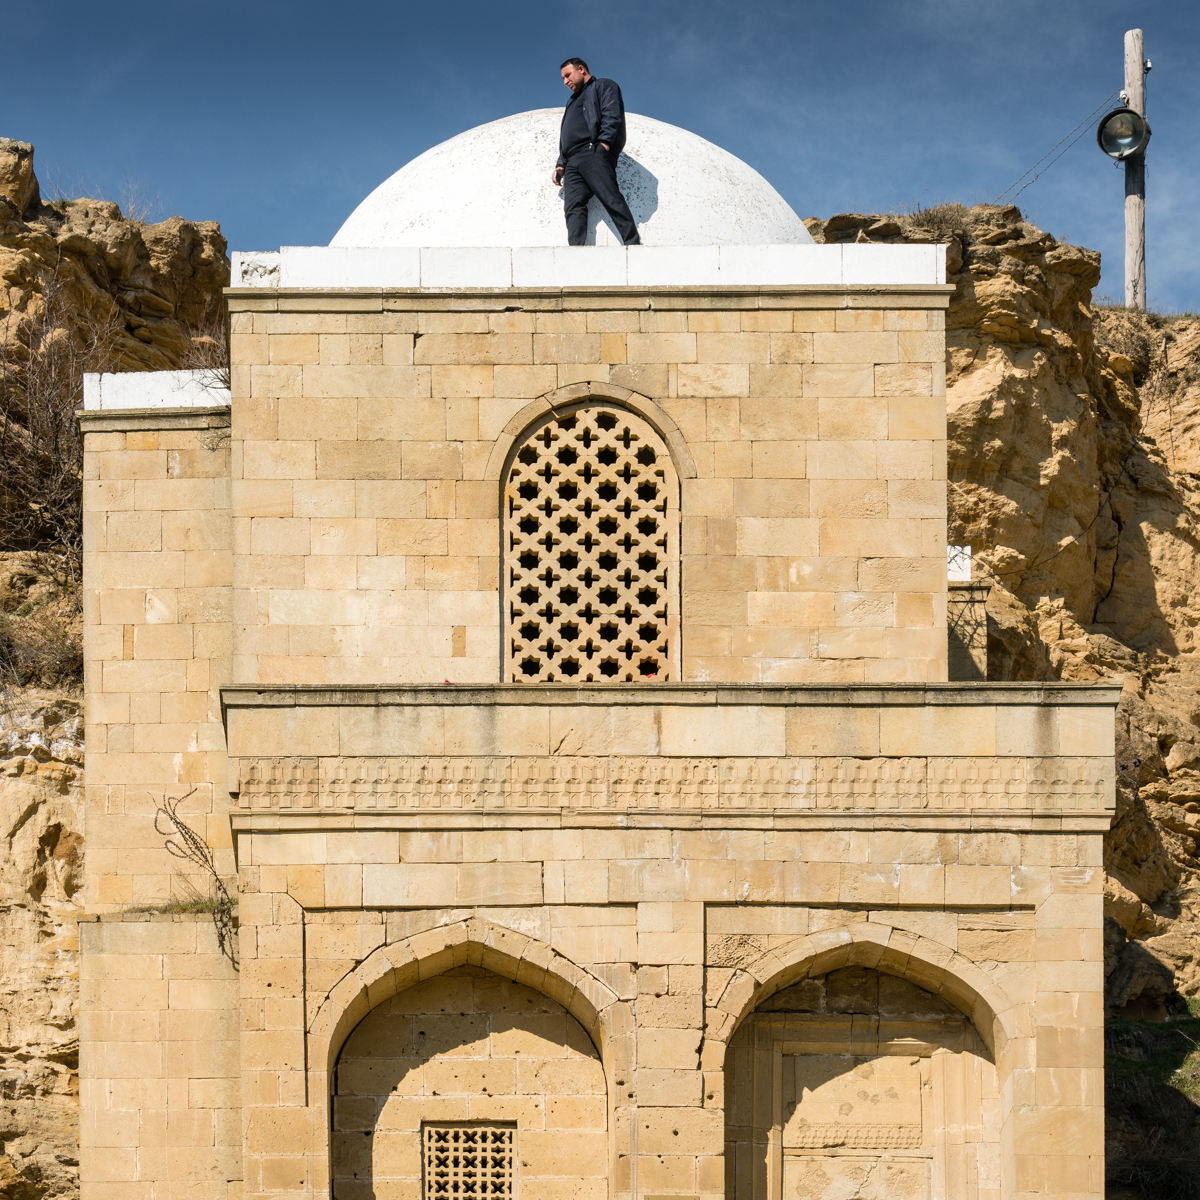 Close up, looking up at a mosque built into a cliff